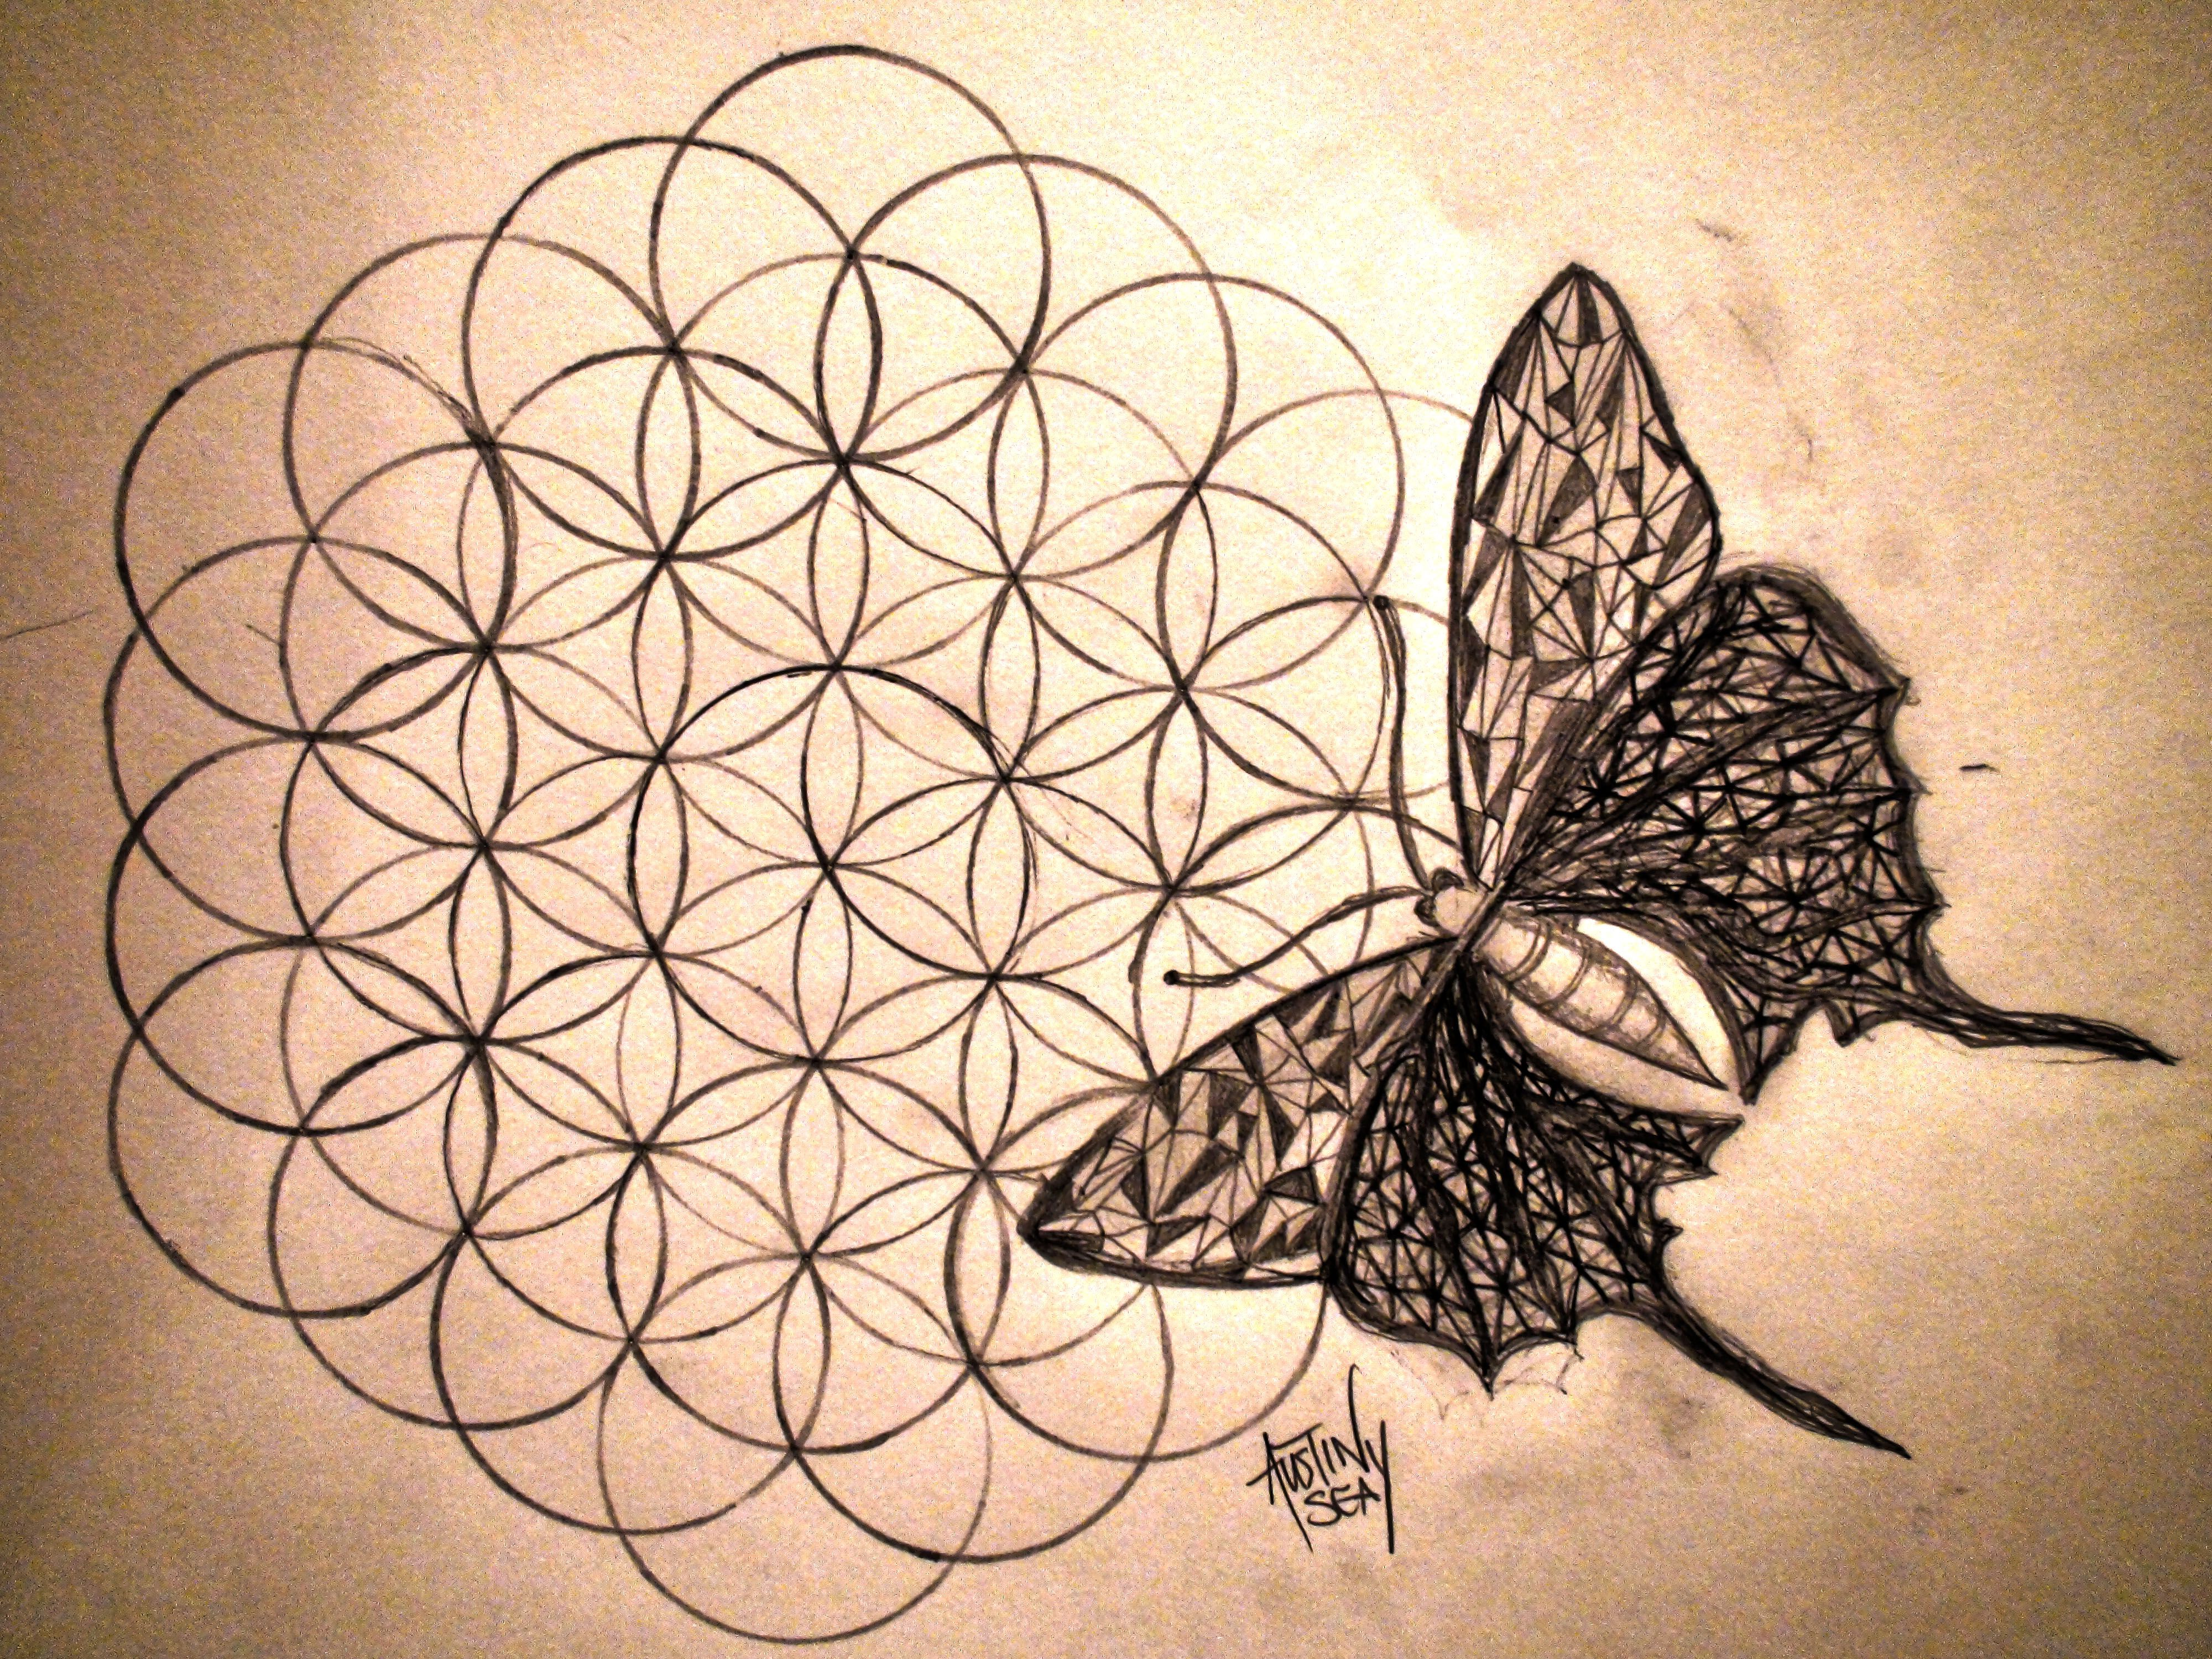 Butterfly on the Flower of Life. Flower of life tattoo